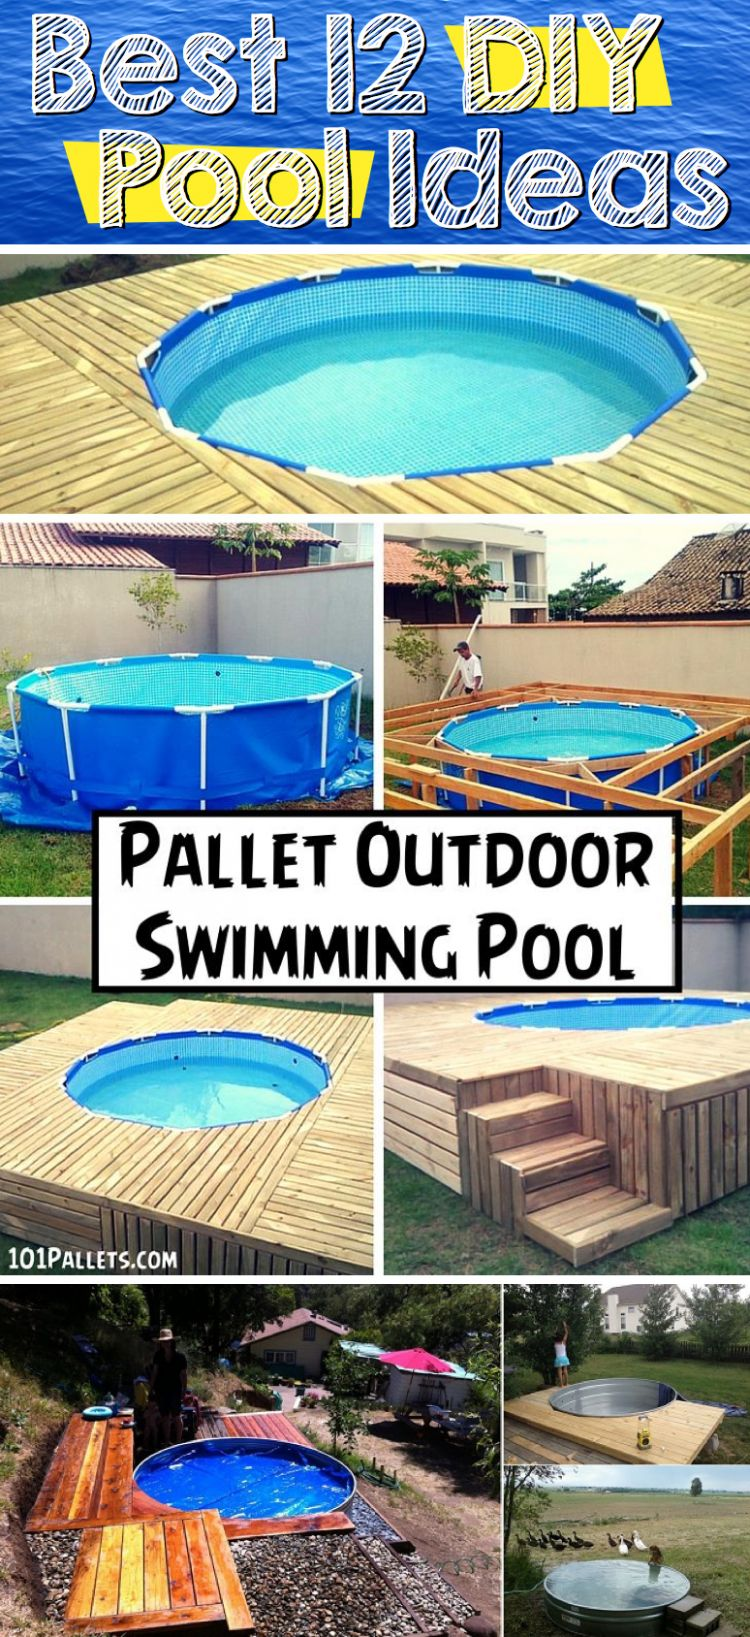 The Best 12 DIY Pool Ideas – Cute DIY Projects - pool ideas diy